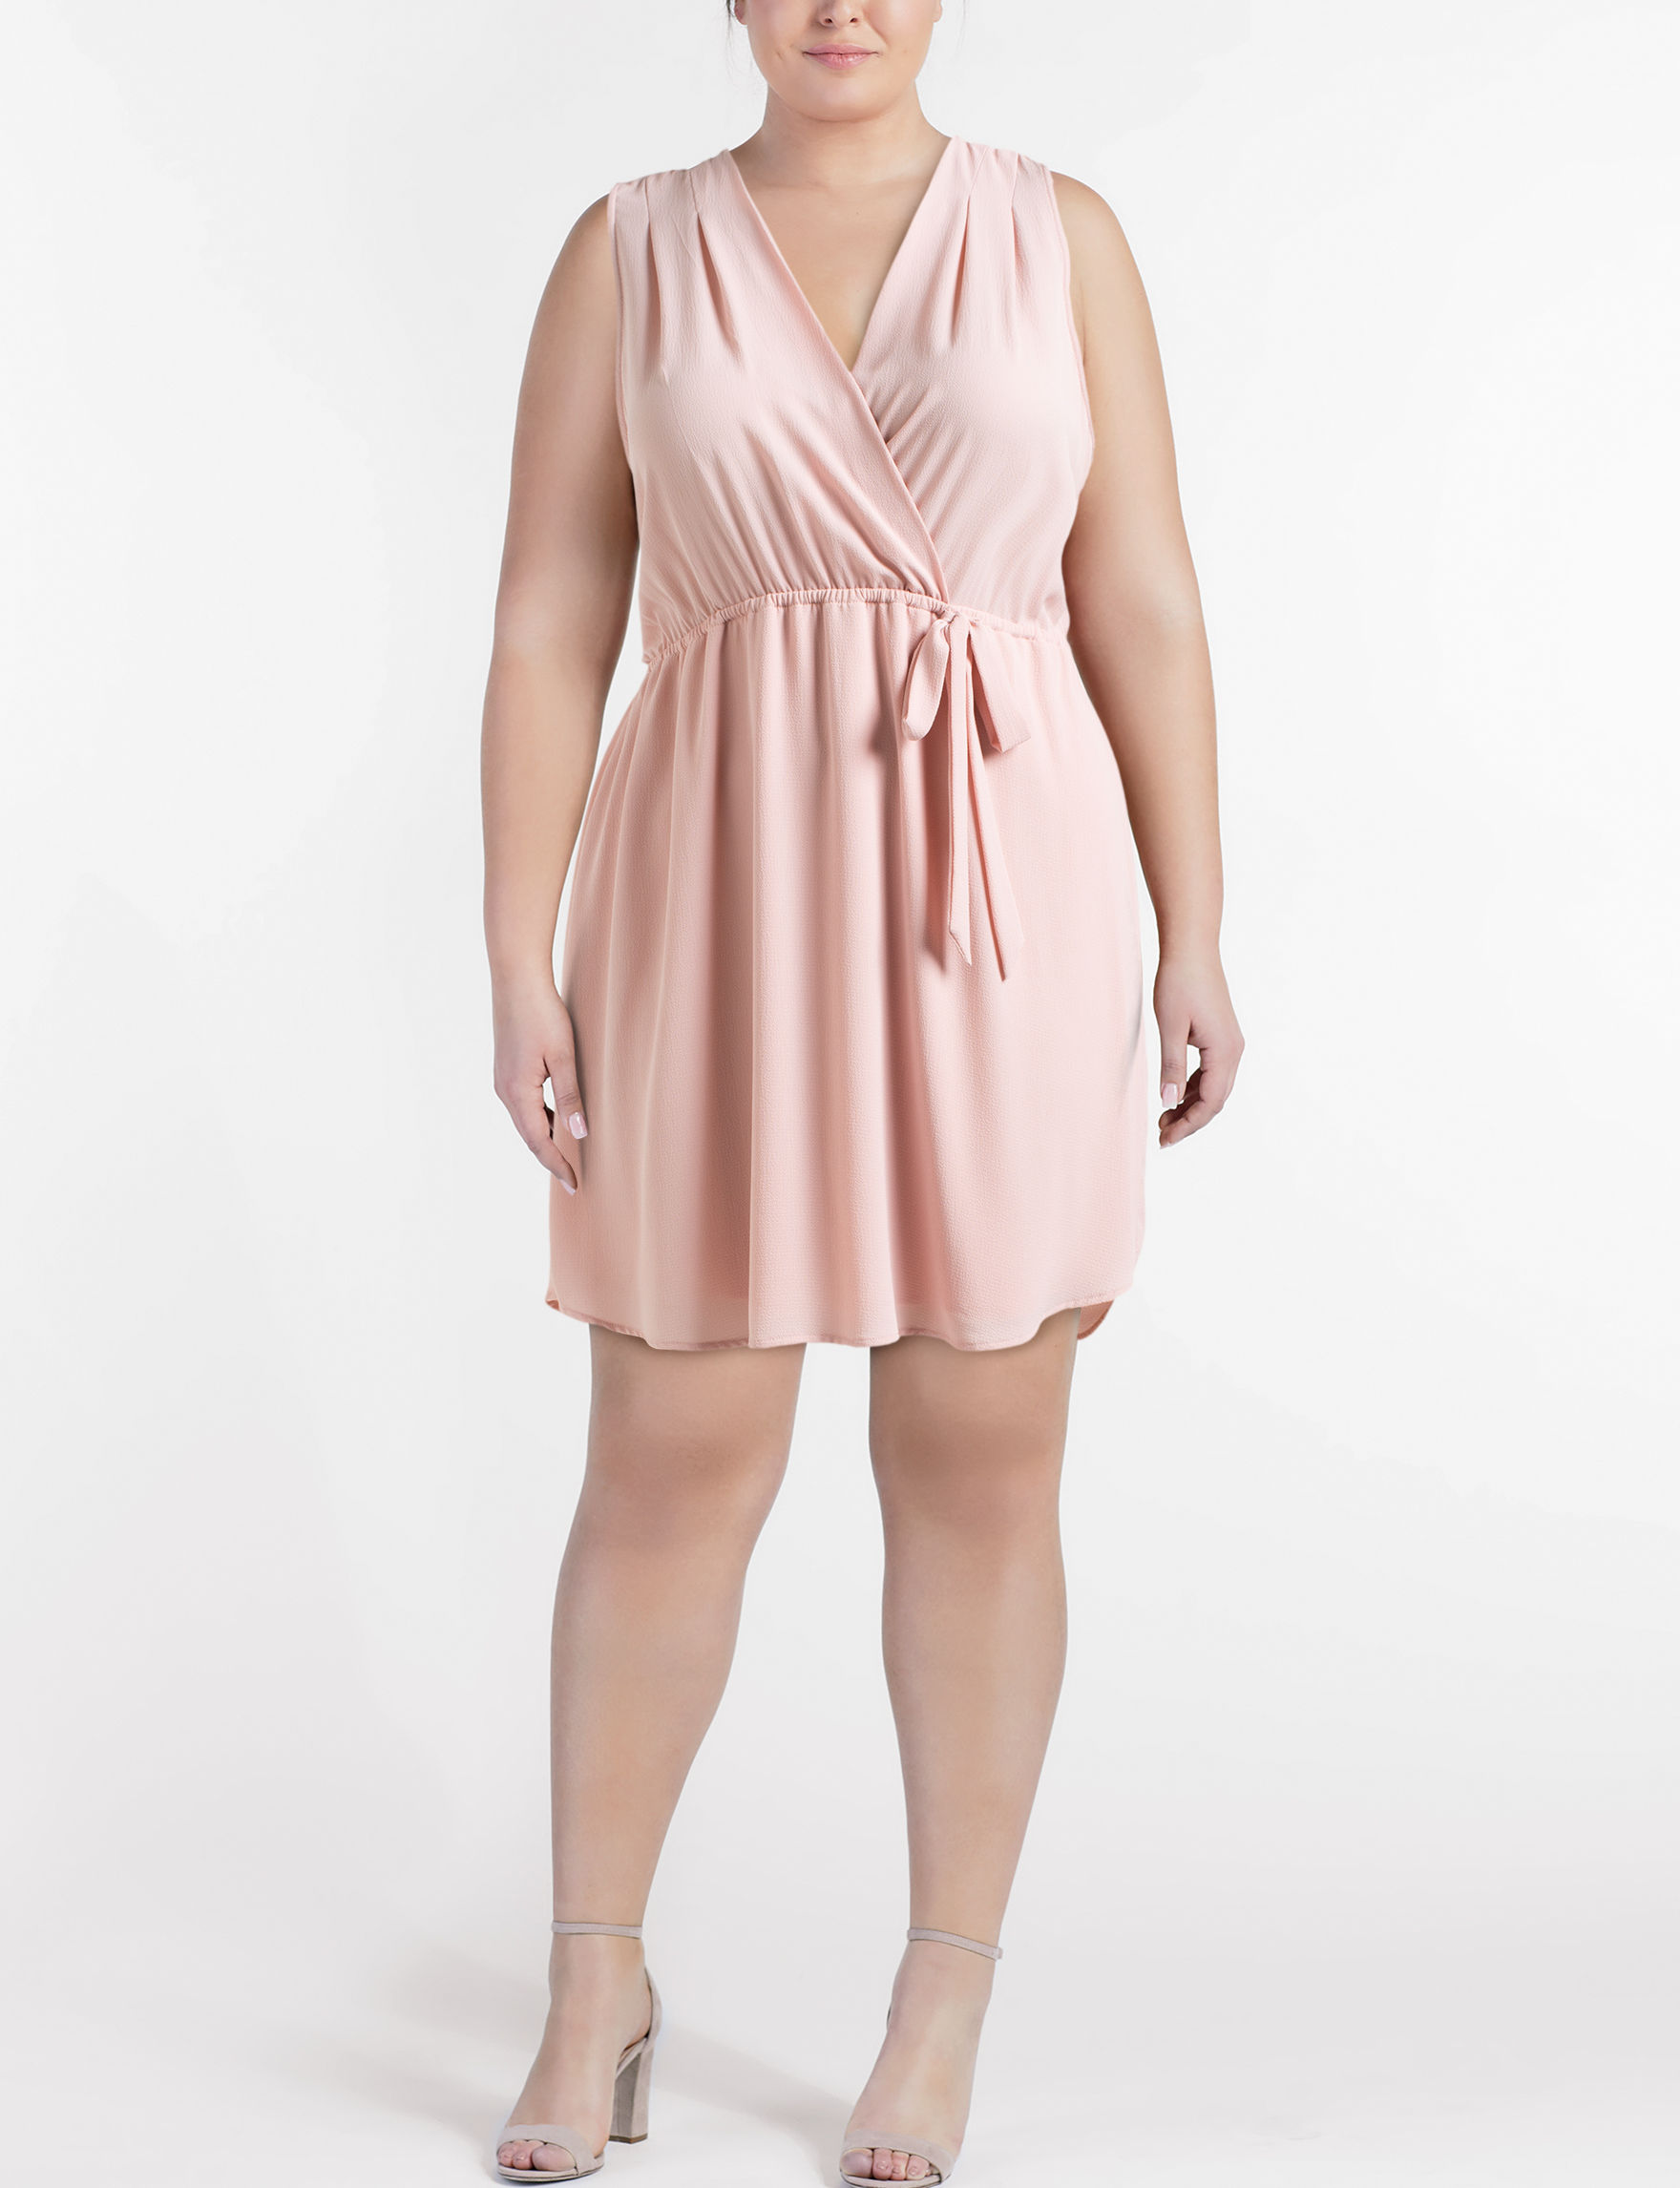 Wishful Park Mauve Everyday & Casual Fit & Flare Dresses